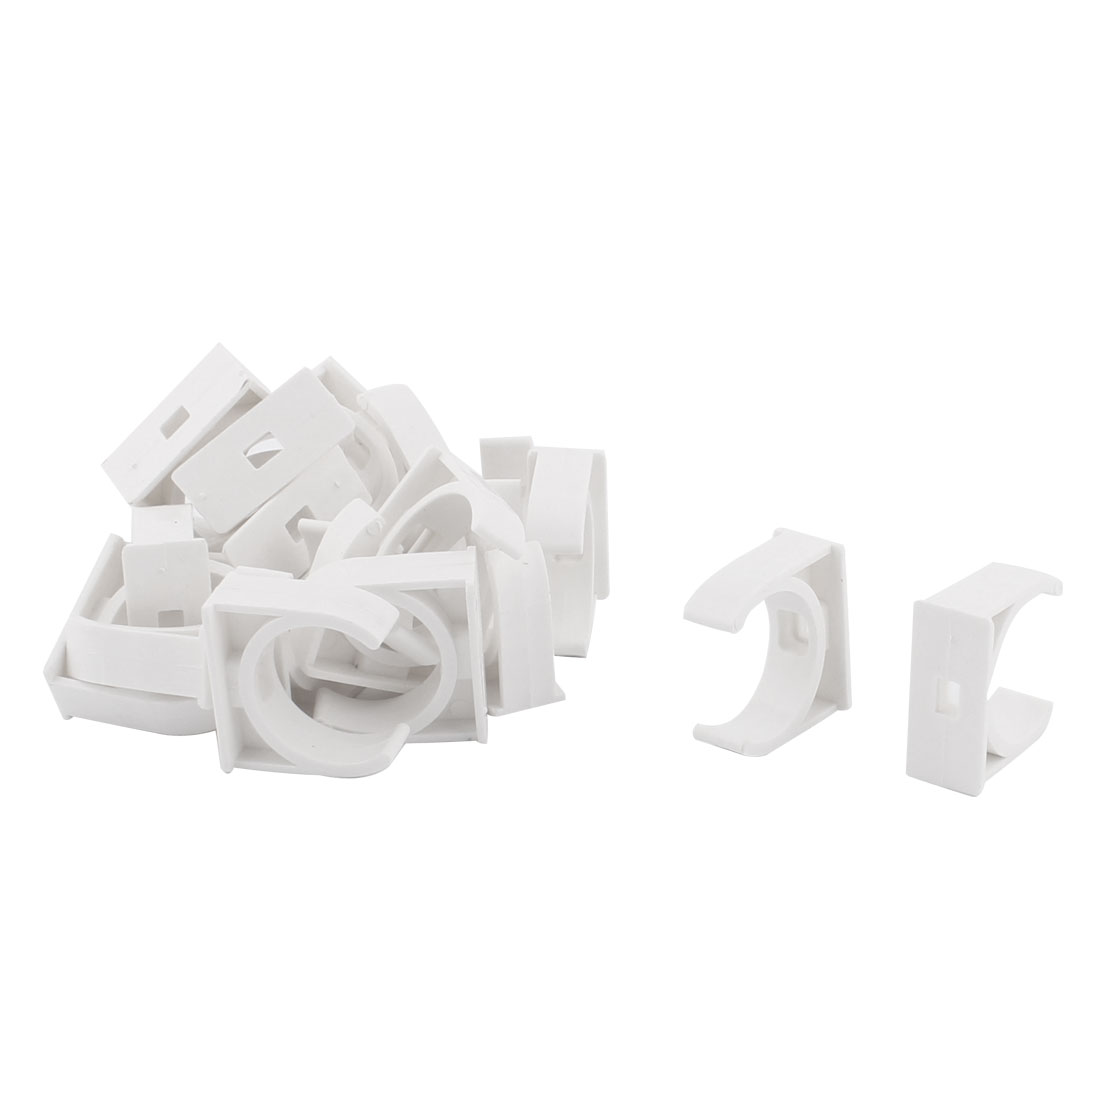 Water Tube Hose Pipe Multifunctional Fittings Parts Clamps Clips 32mm Dia 20pcs